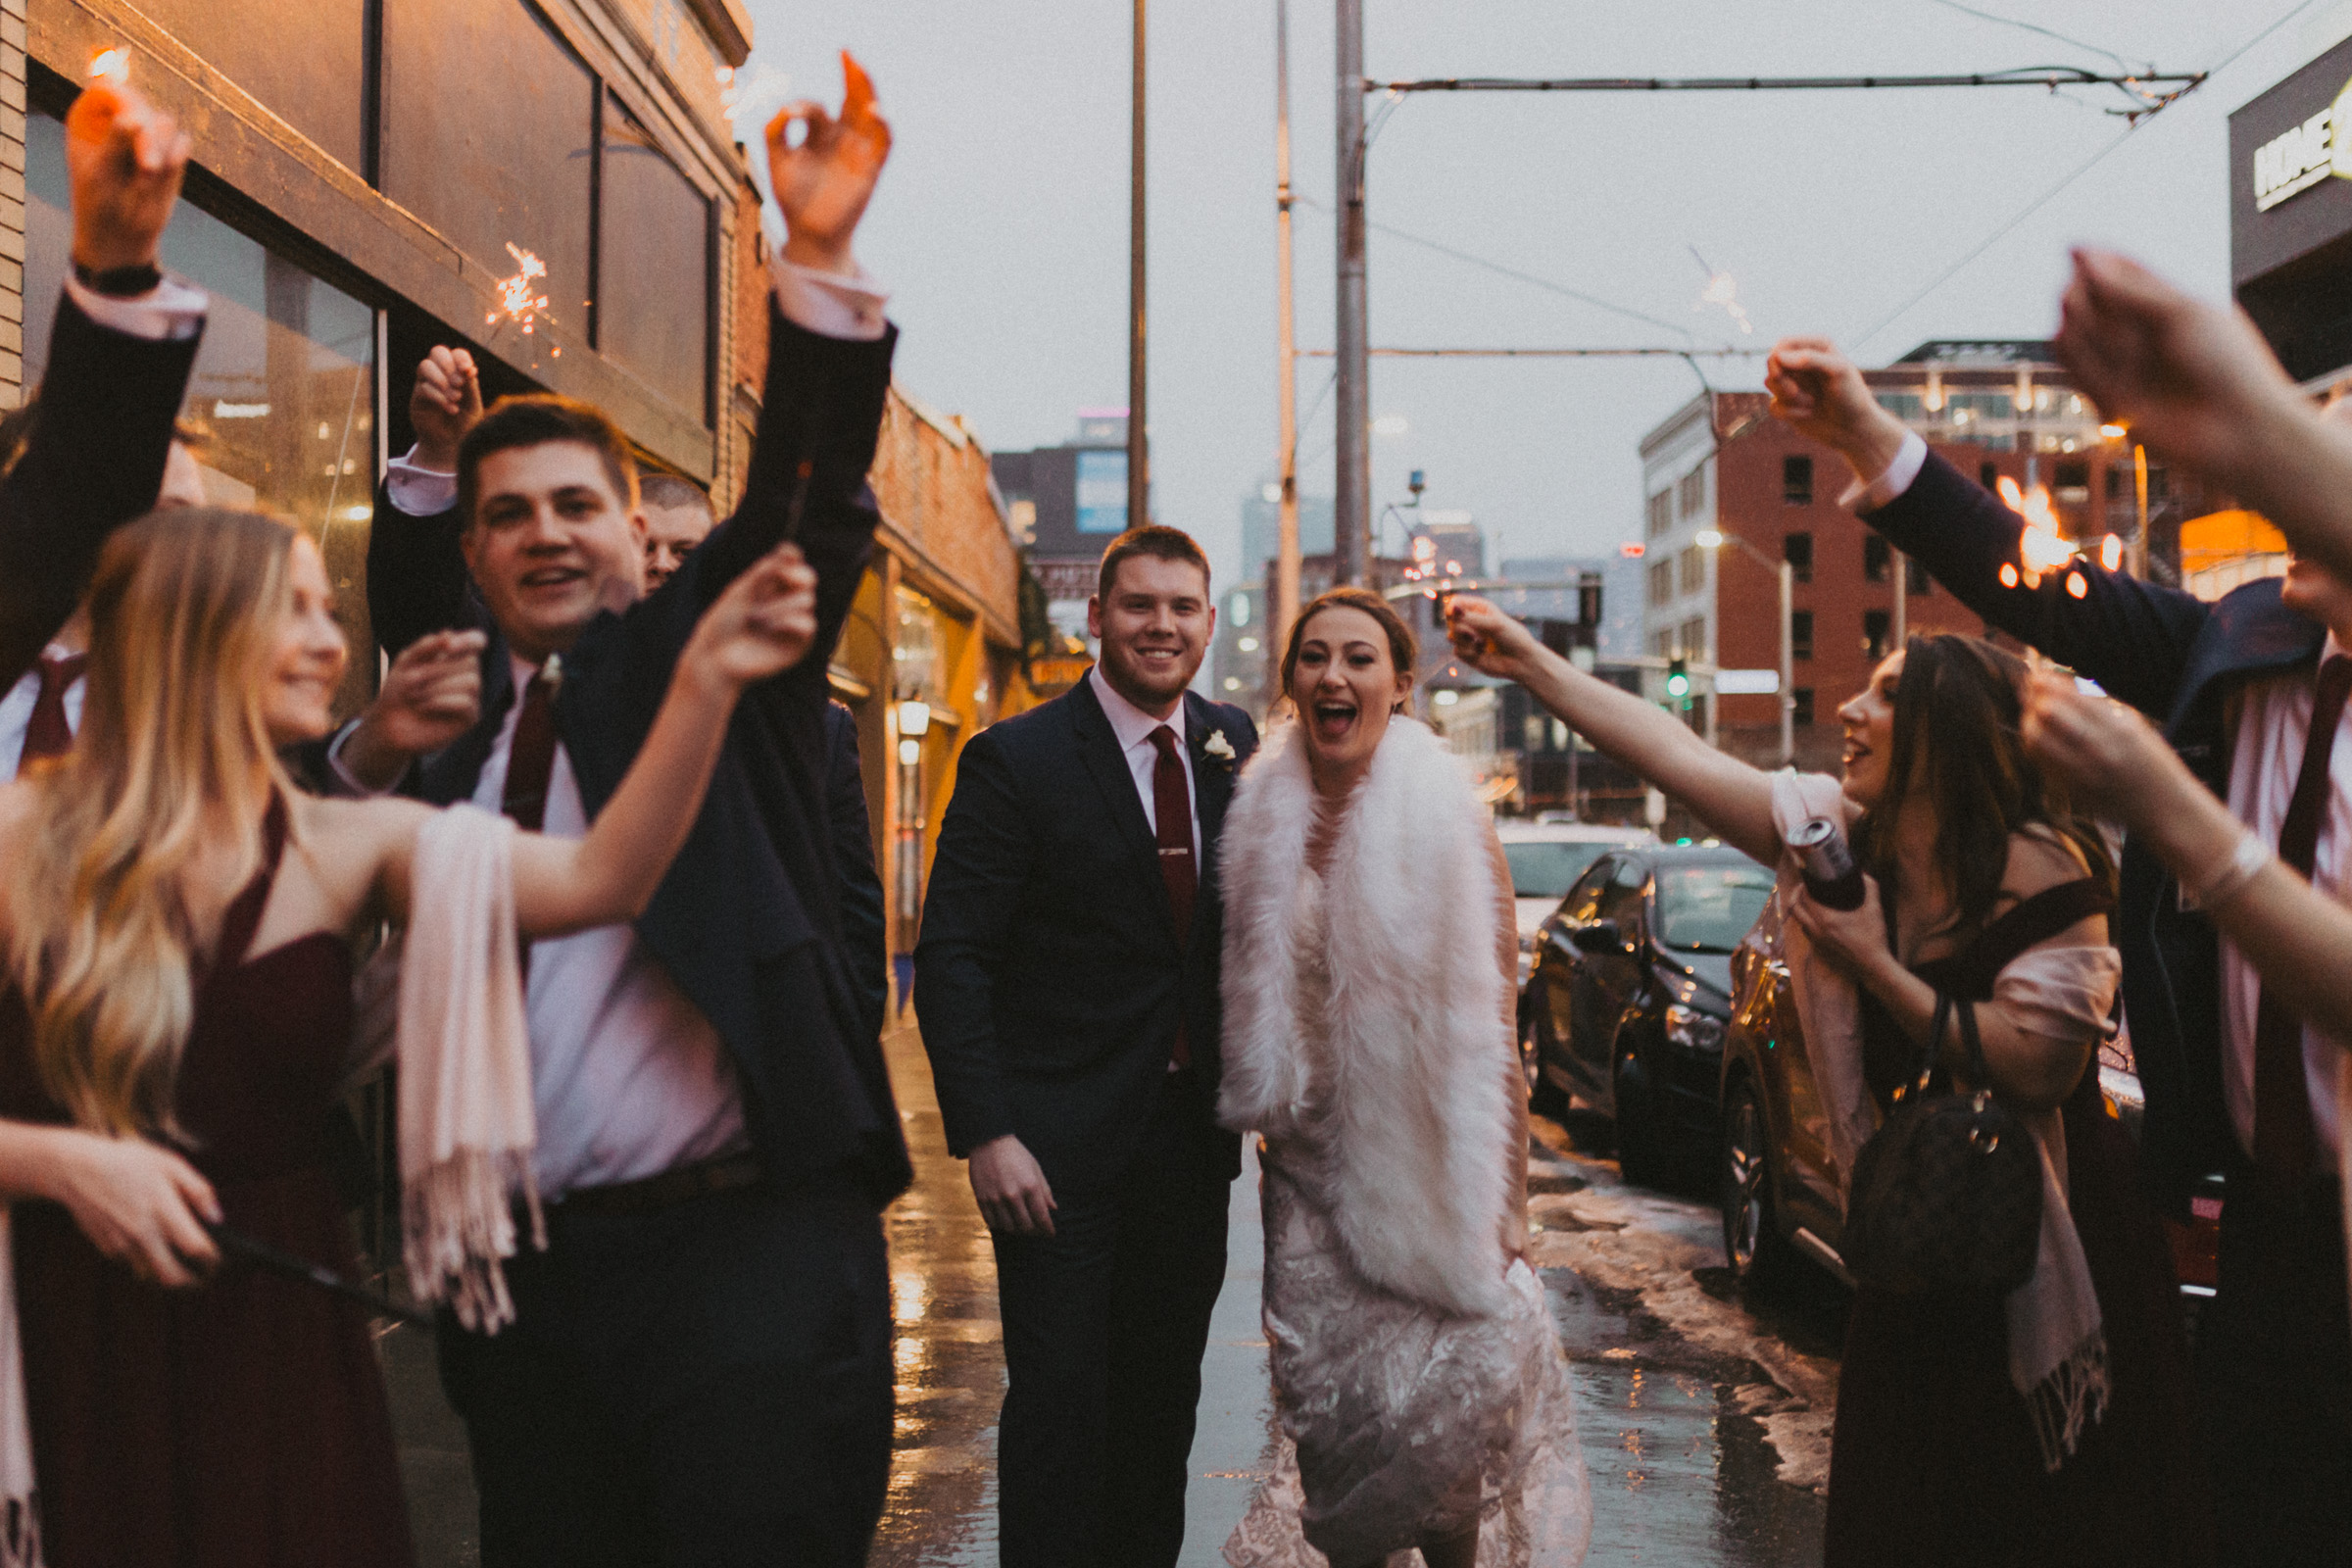 alyssa barletter photography 2016 main kansas city wedding rainy day photographer grace and justin magott-63.jpg